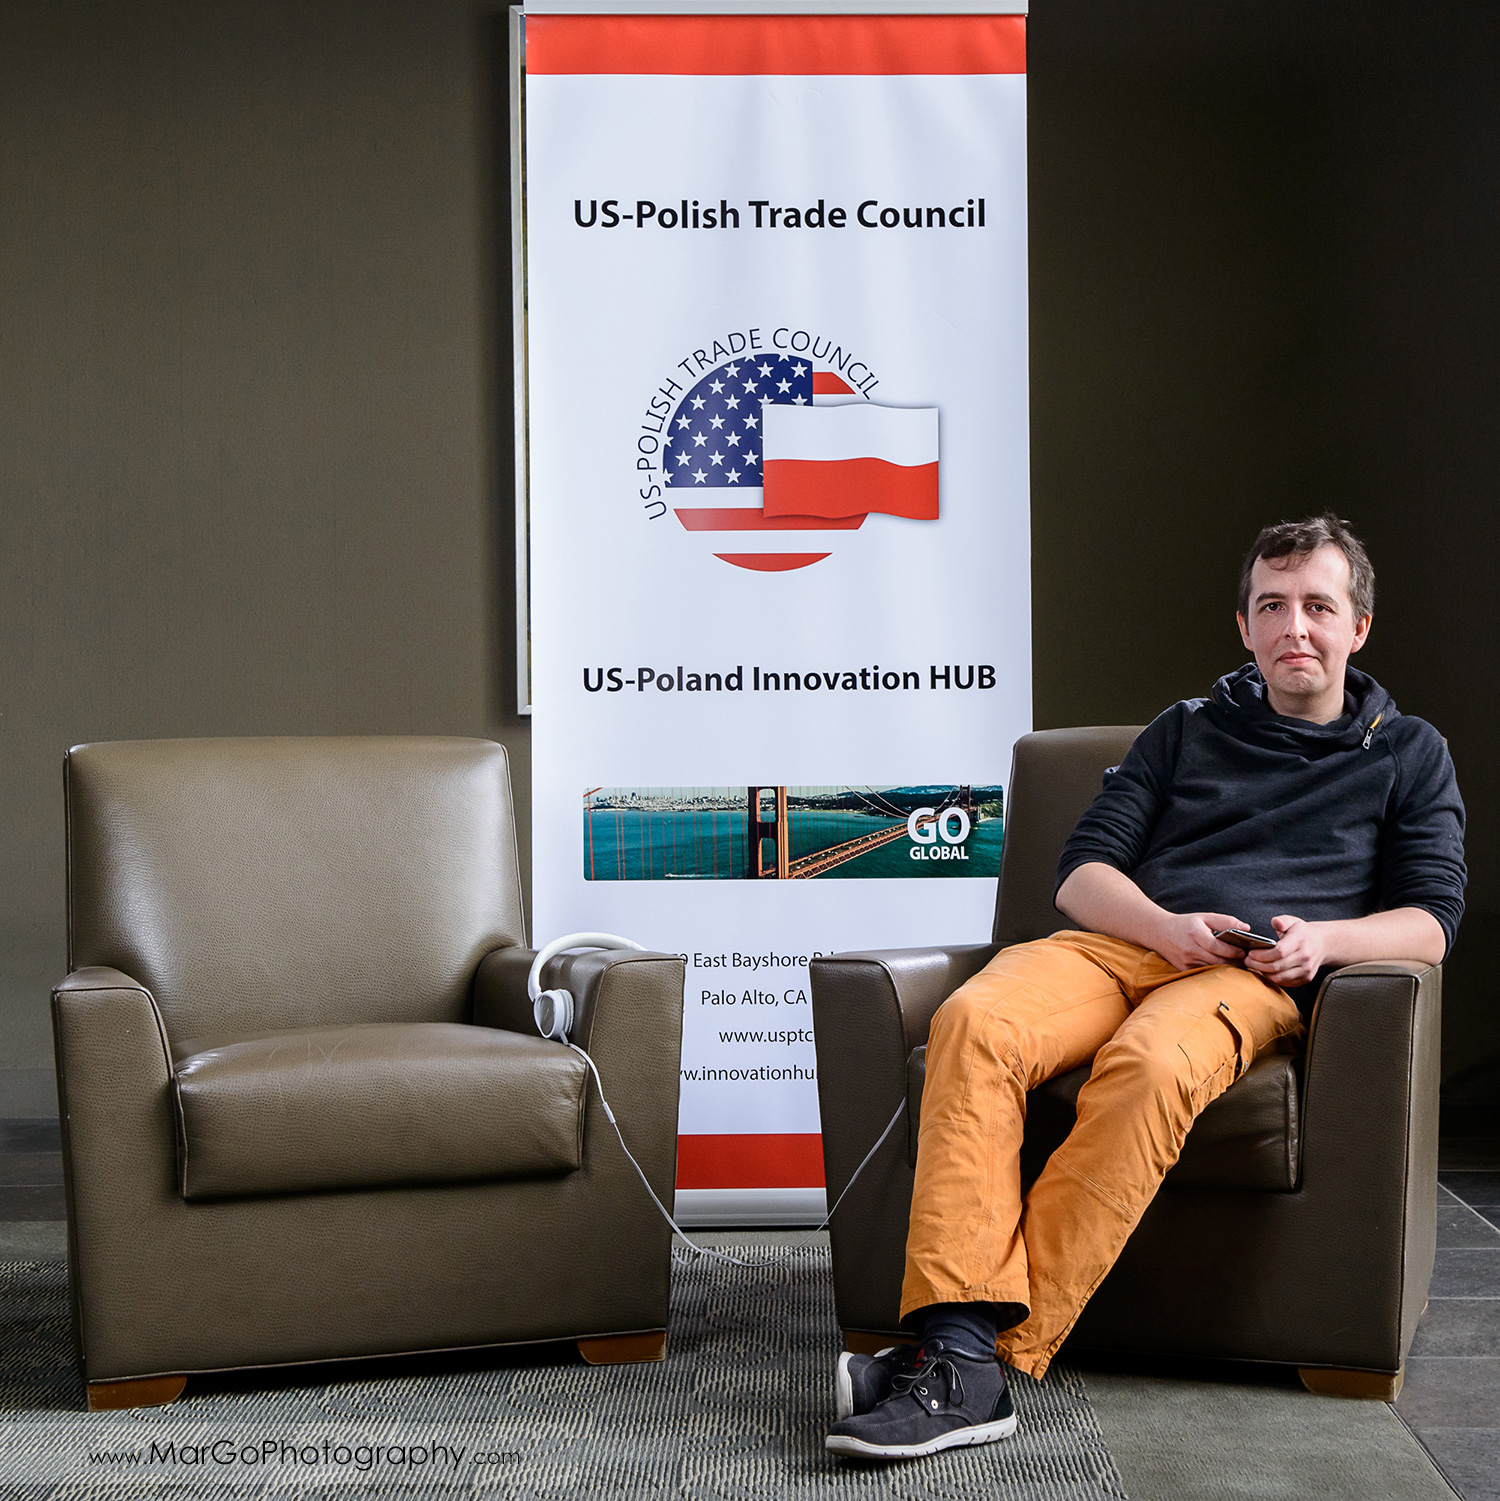 business portrait of a man sitting on the chairs